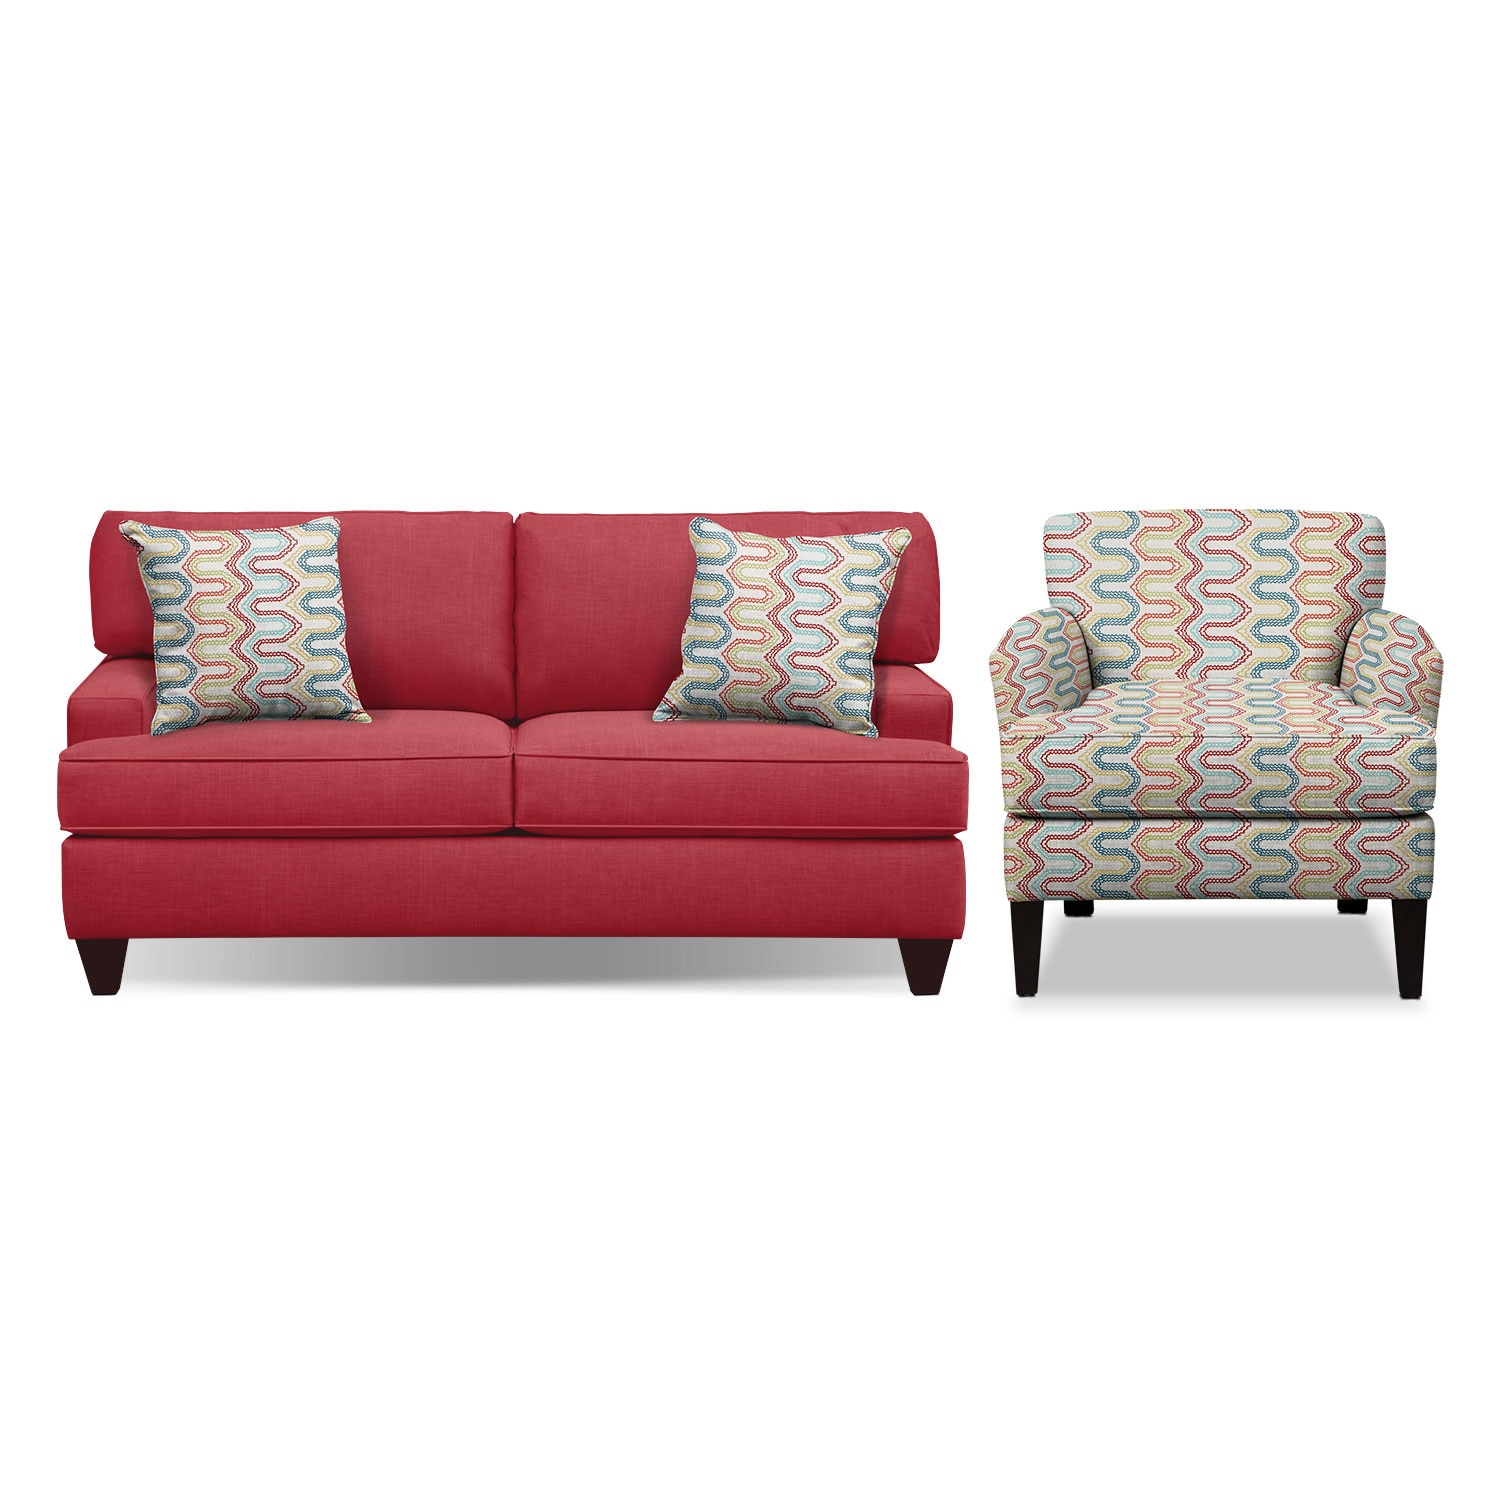 "Living Room Furniture - Conner Red 75"" Innerspring Sleeper Sofa and Accent Chair Set"